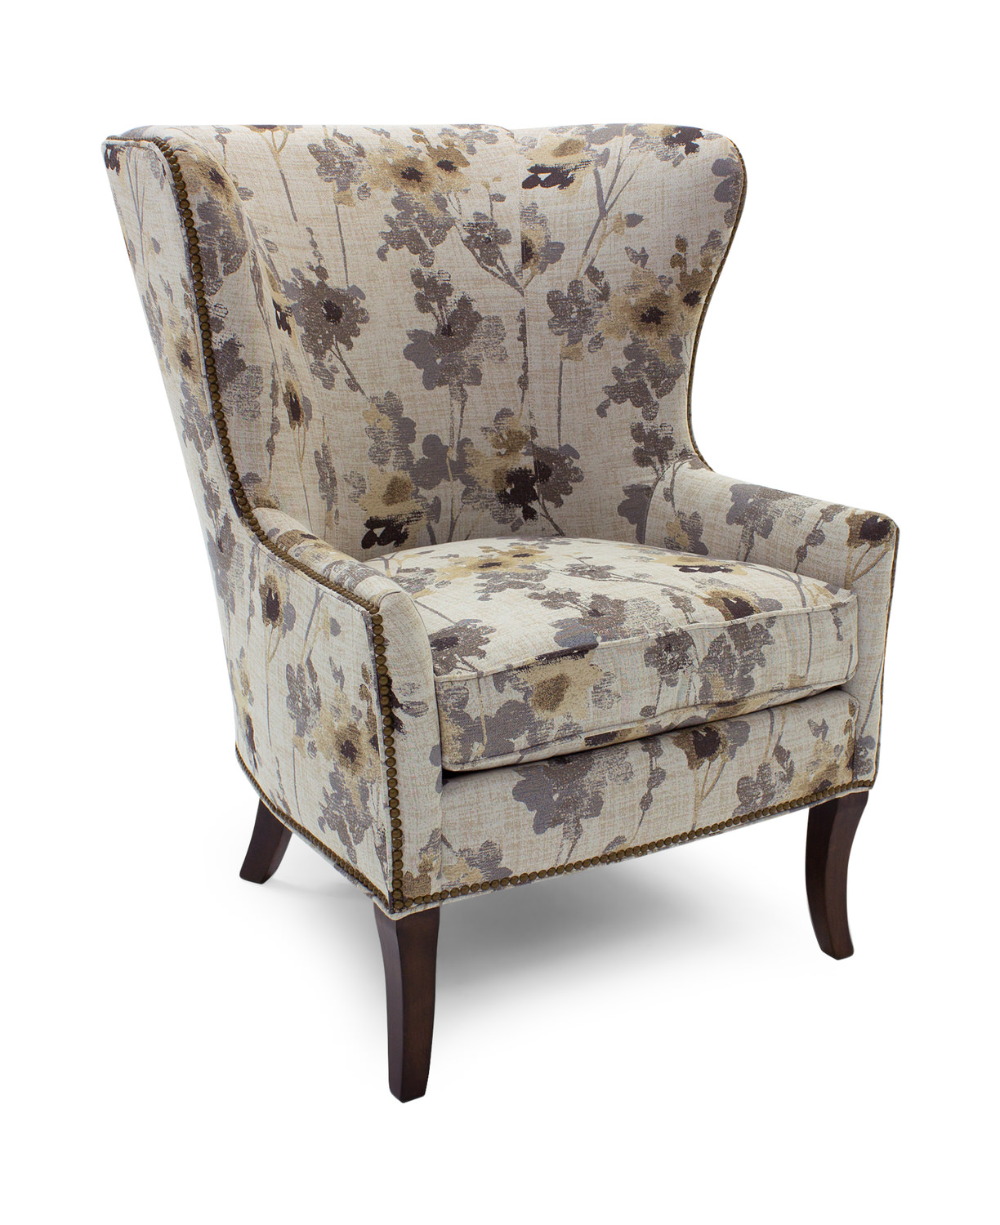 Hartwell Wing Chair Hom Furniture Hom Furniture Furniture Wing Chair